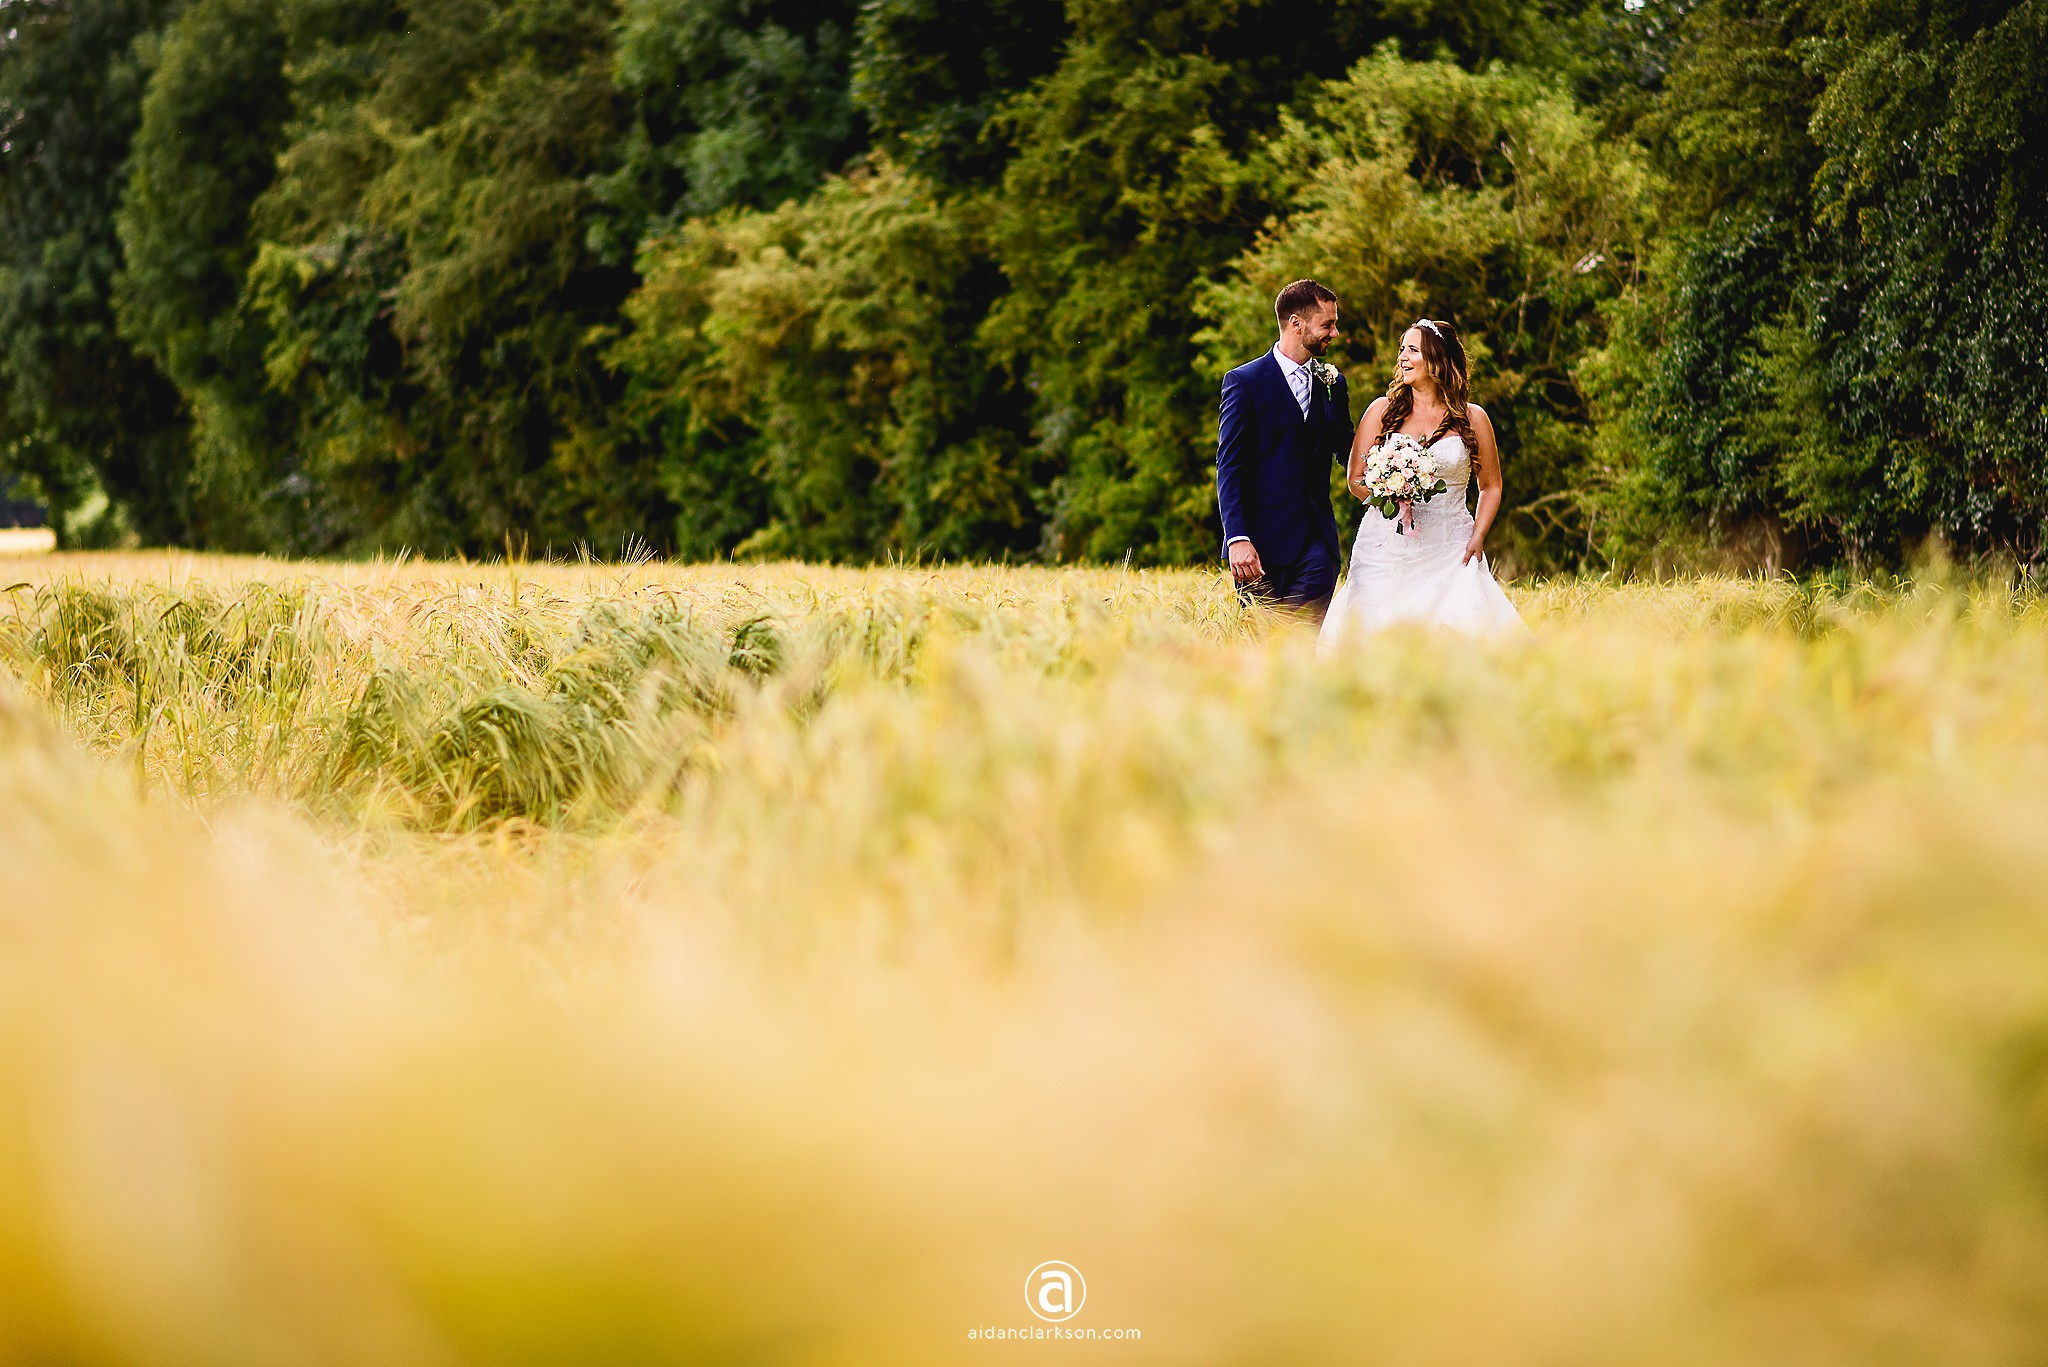 Hall Farm Wedding Photographer Lincolnshire_0048